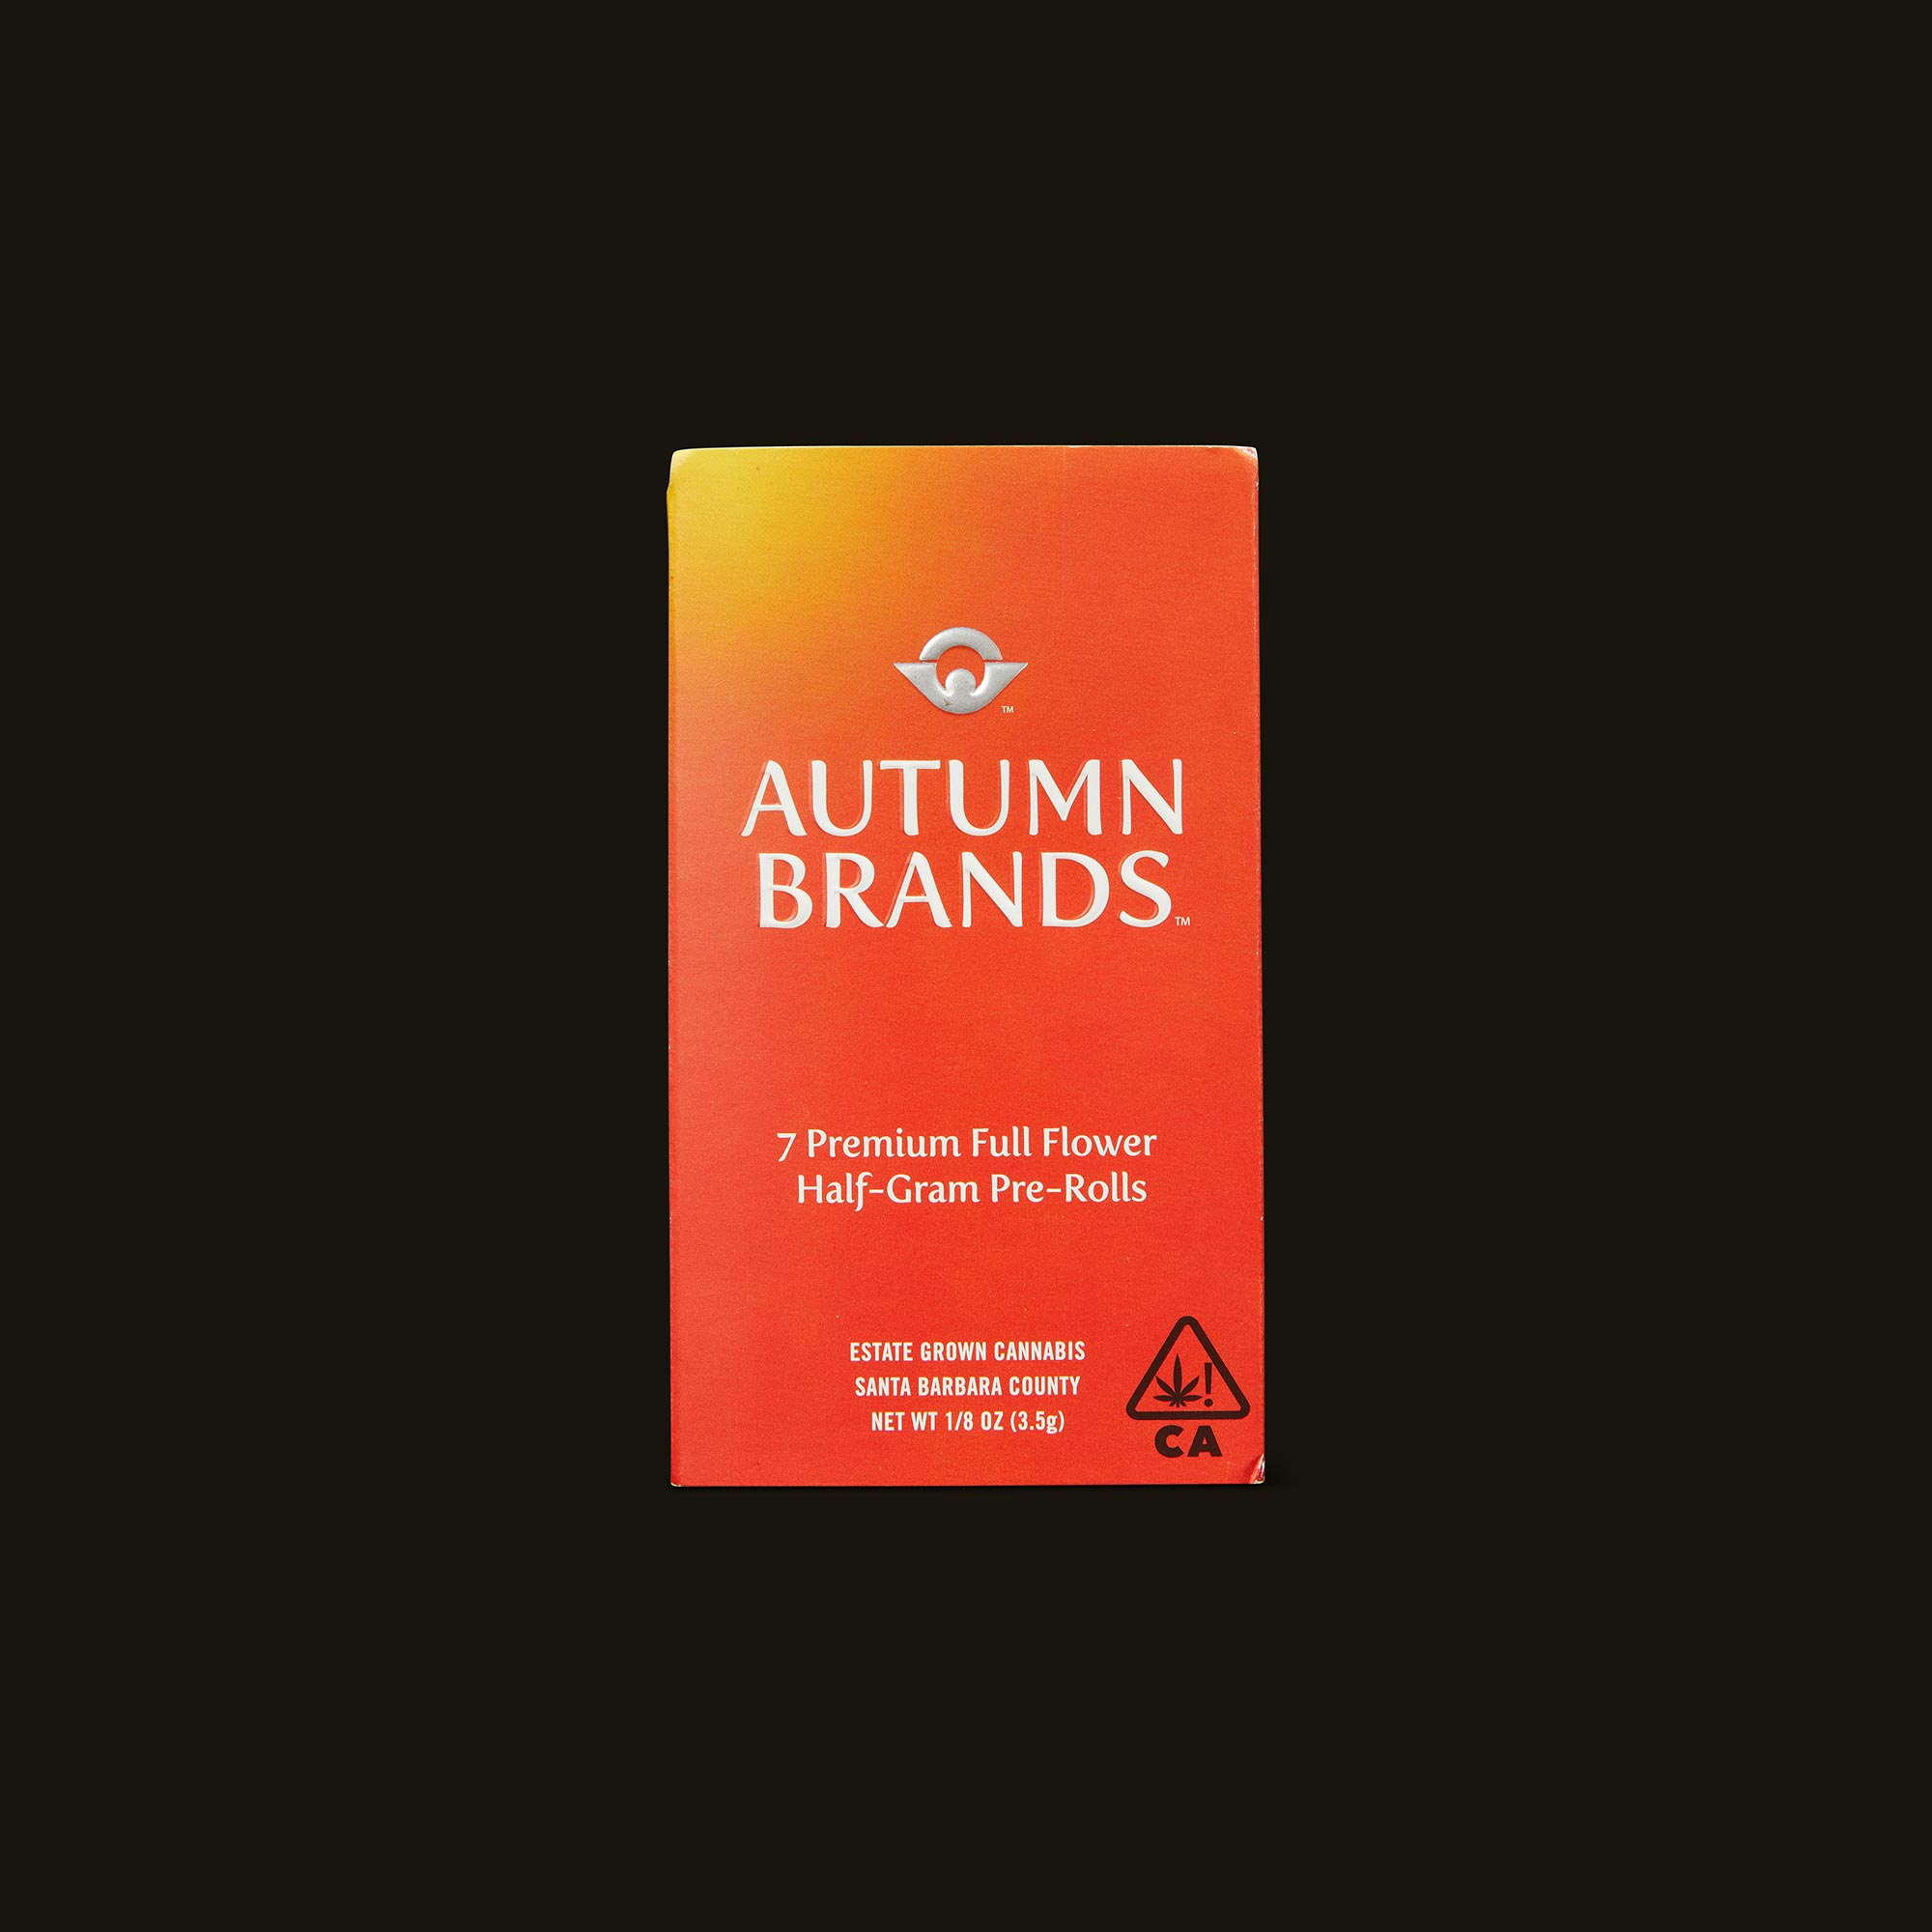 Autumn Brands Sweet Cherry Orange Pack Front Packaging